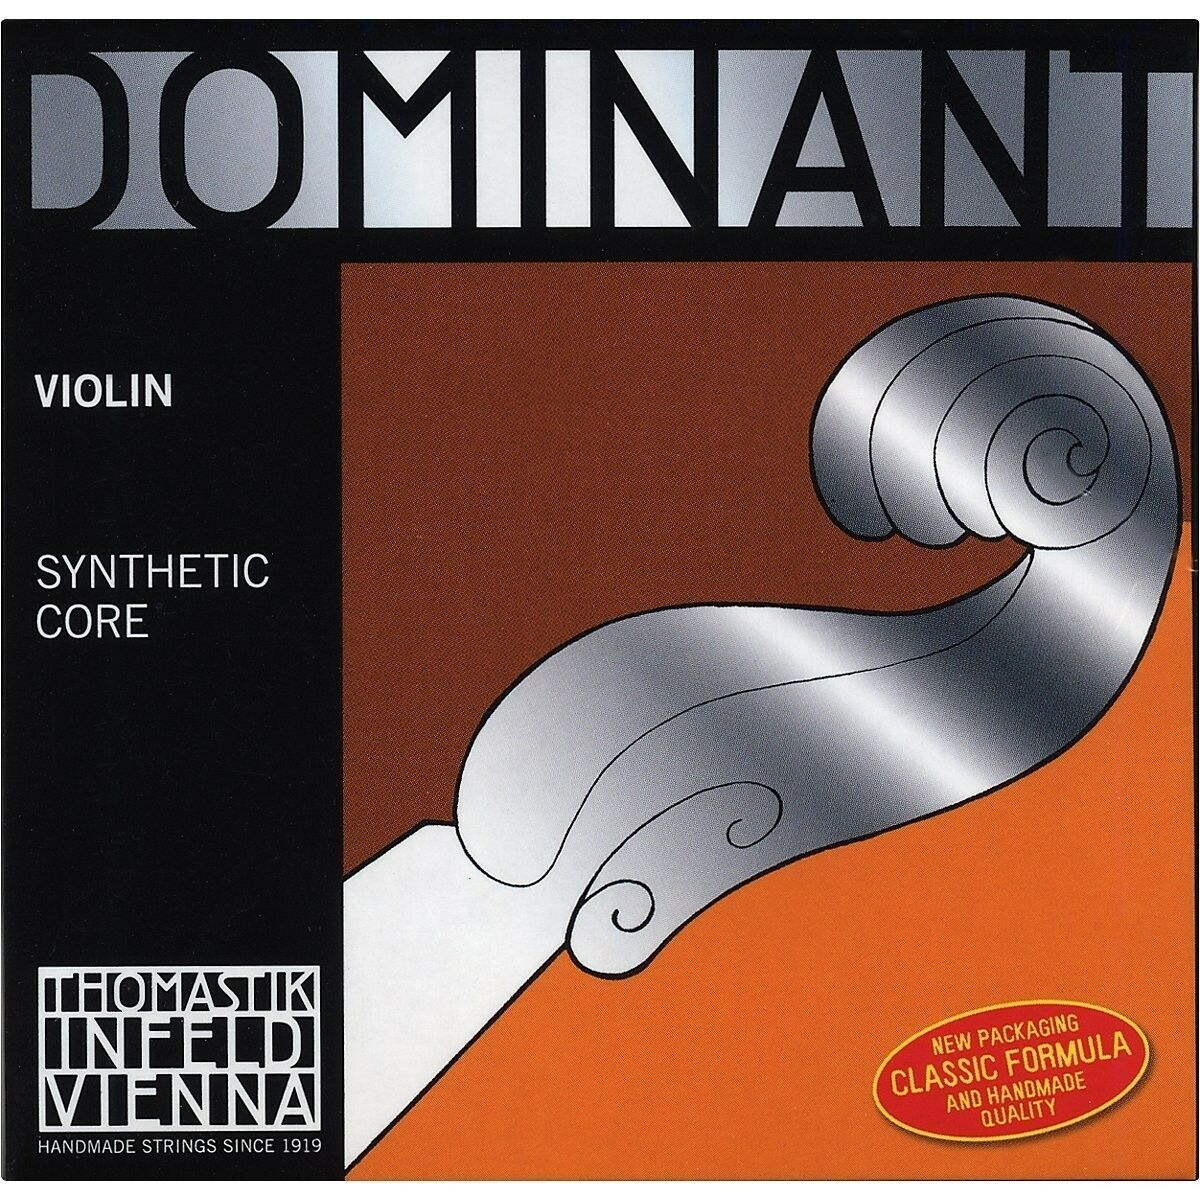 Dr Thomastik-Infeld135.13999999999999 Dominant Violin Strings, Complete Set,...